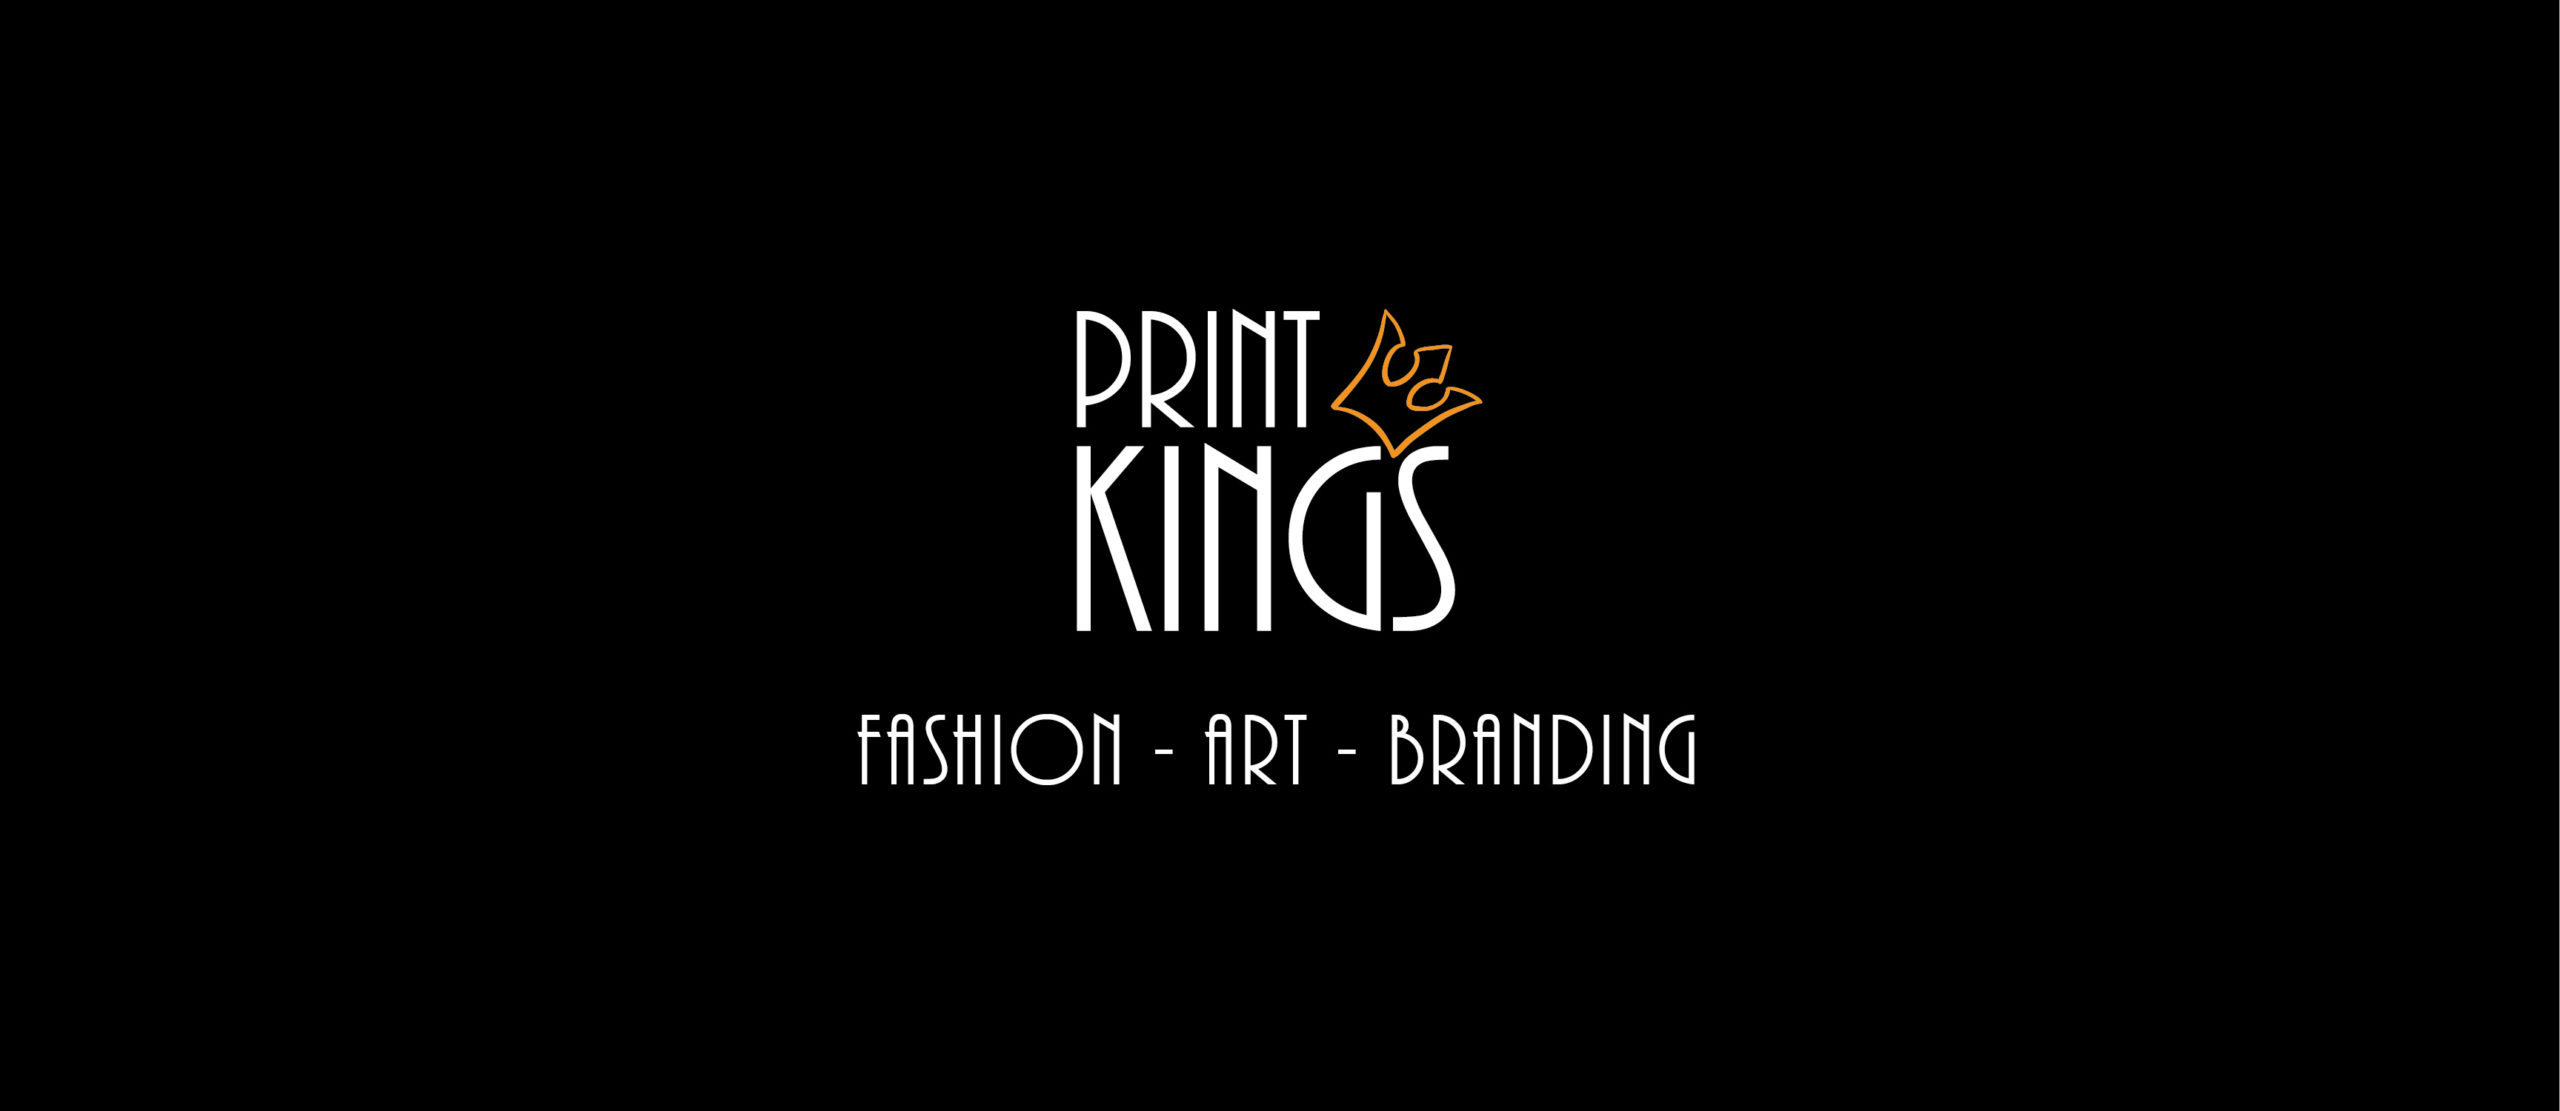 THE PRINT KINGS COVER